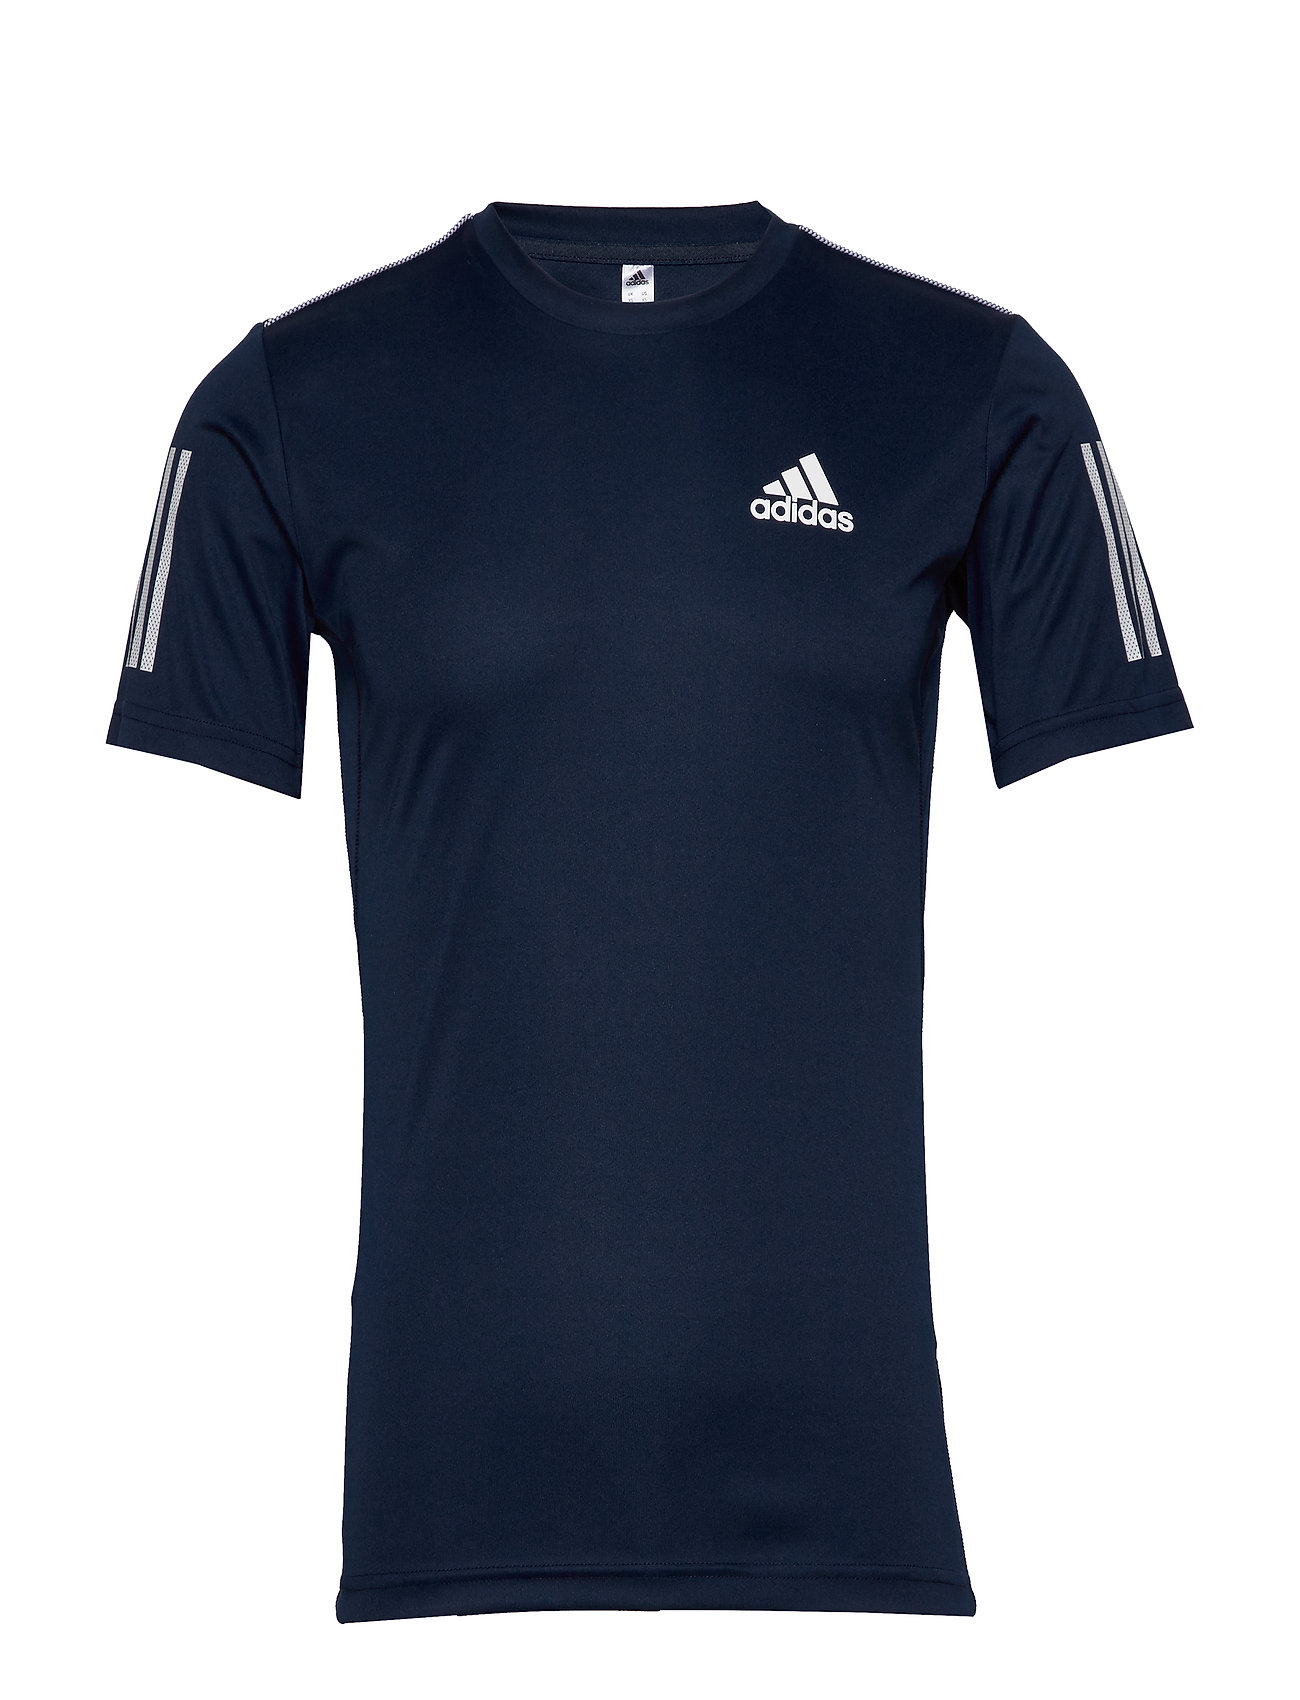 adidas Tennis CLUB 3STR TEE - NAVY